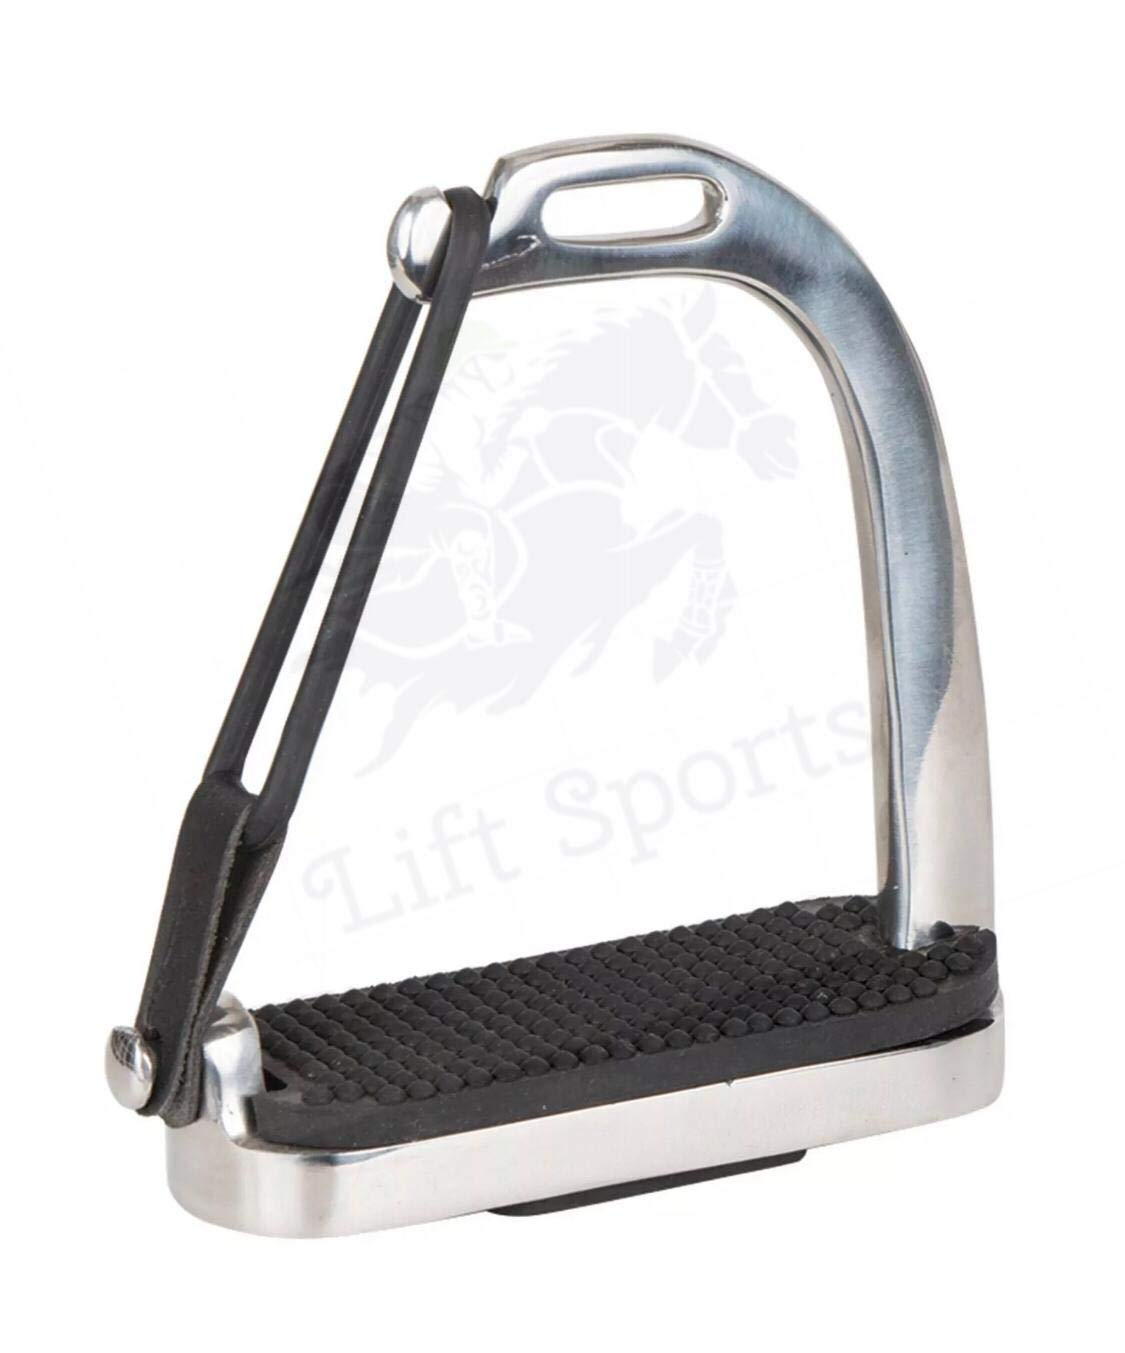 """4.75/"""" HORSE PEACOCK RIDING SAFETY STIRRUPS SILVER POLISH IRONS FILLIS STAINLESS"""